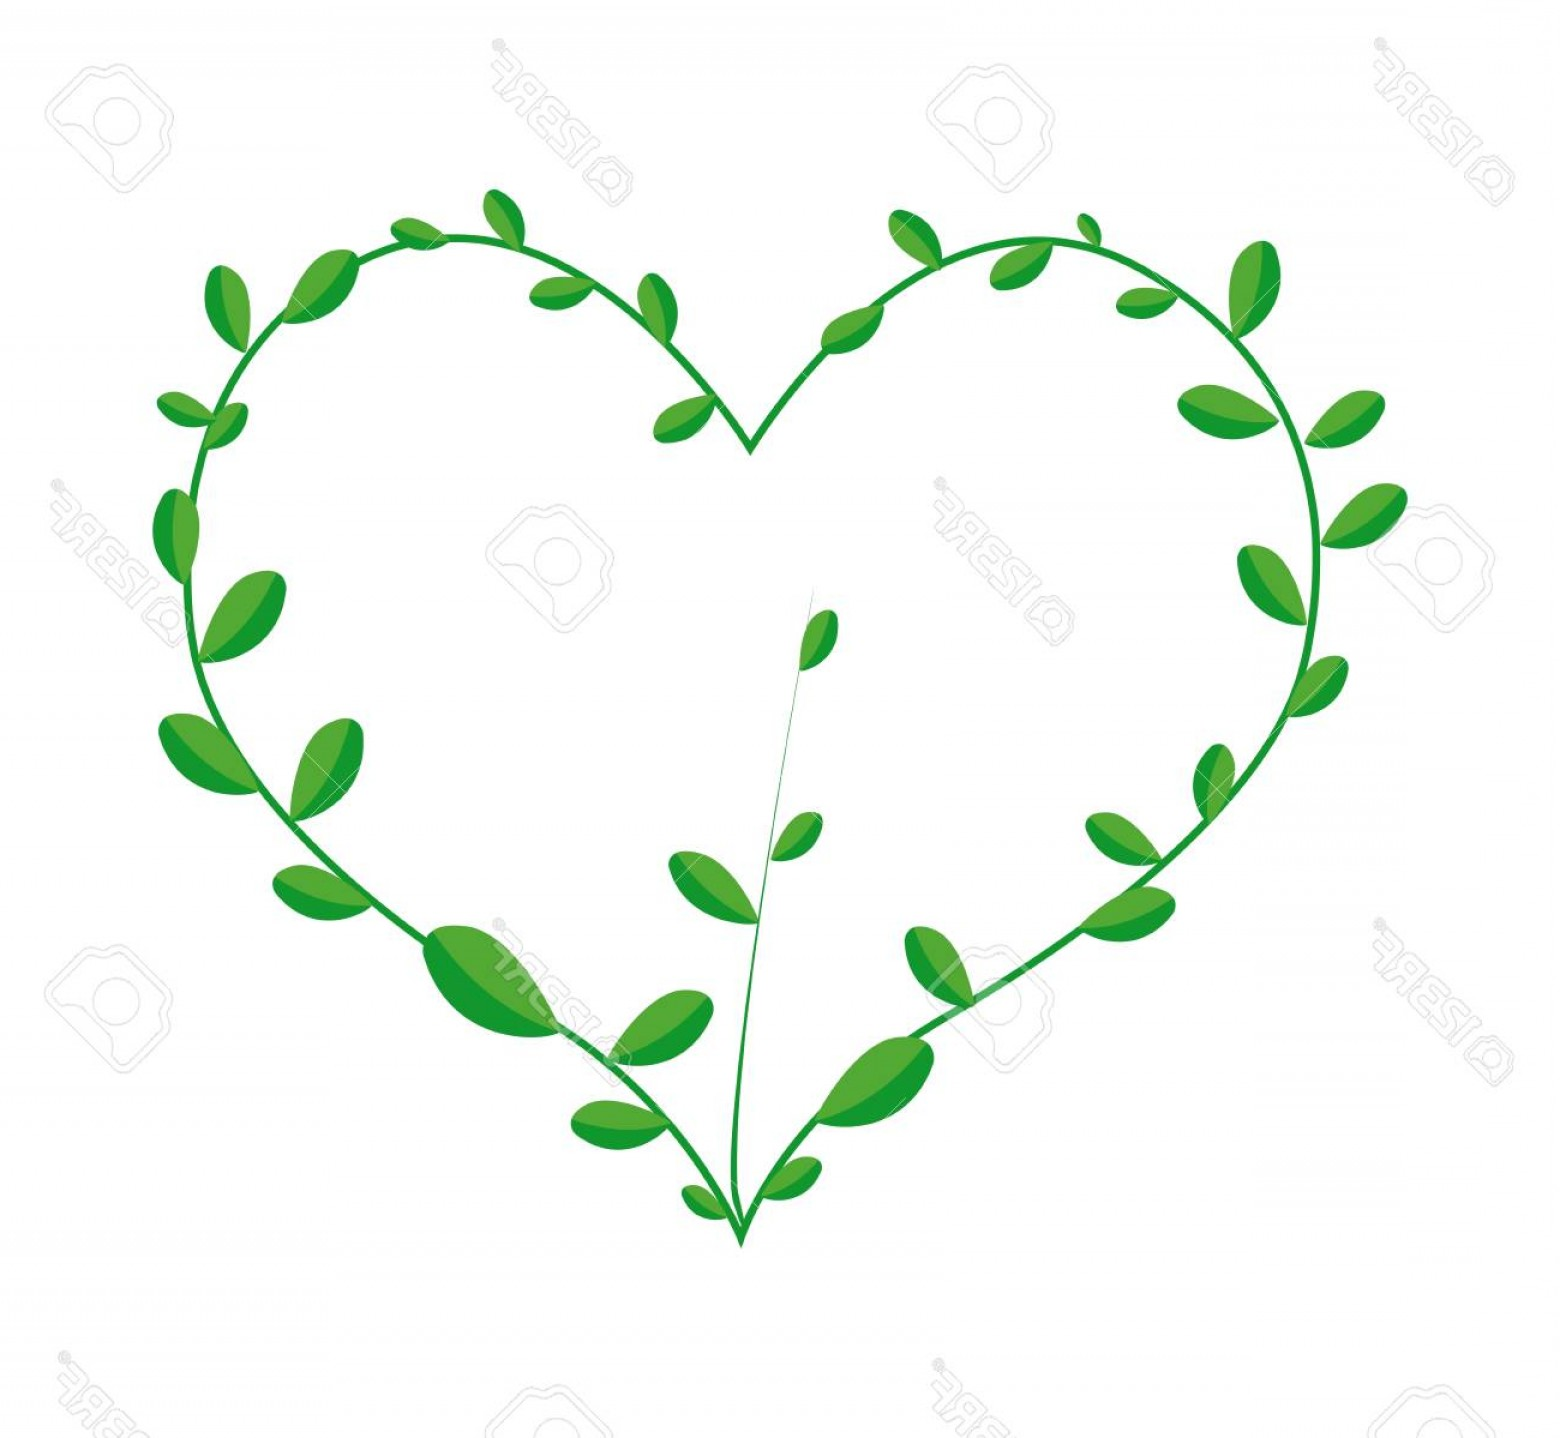 Green Vine Vector: Photostock Vector Love Concept Illustration Of A Heart Shape Frame Made Of Fresh Green Vine Leaves Isolated On A White